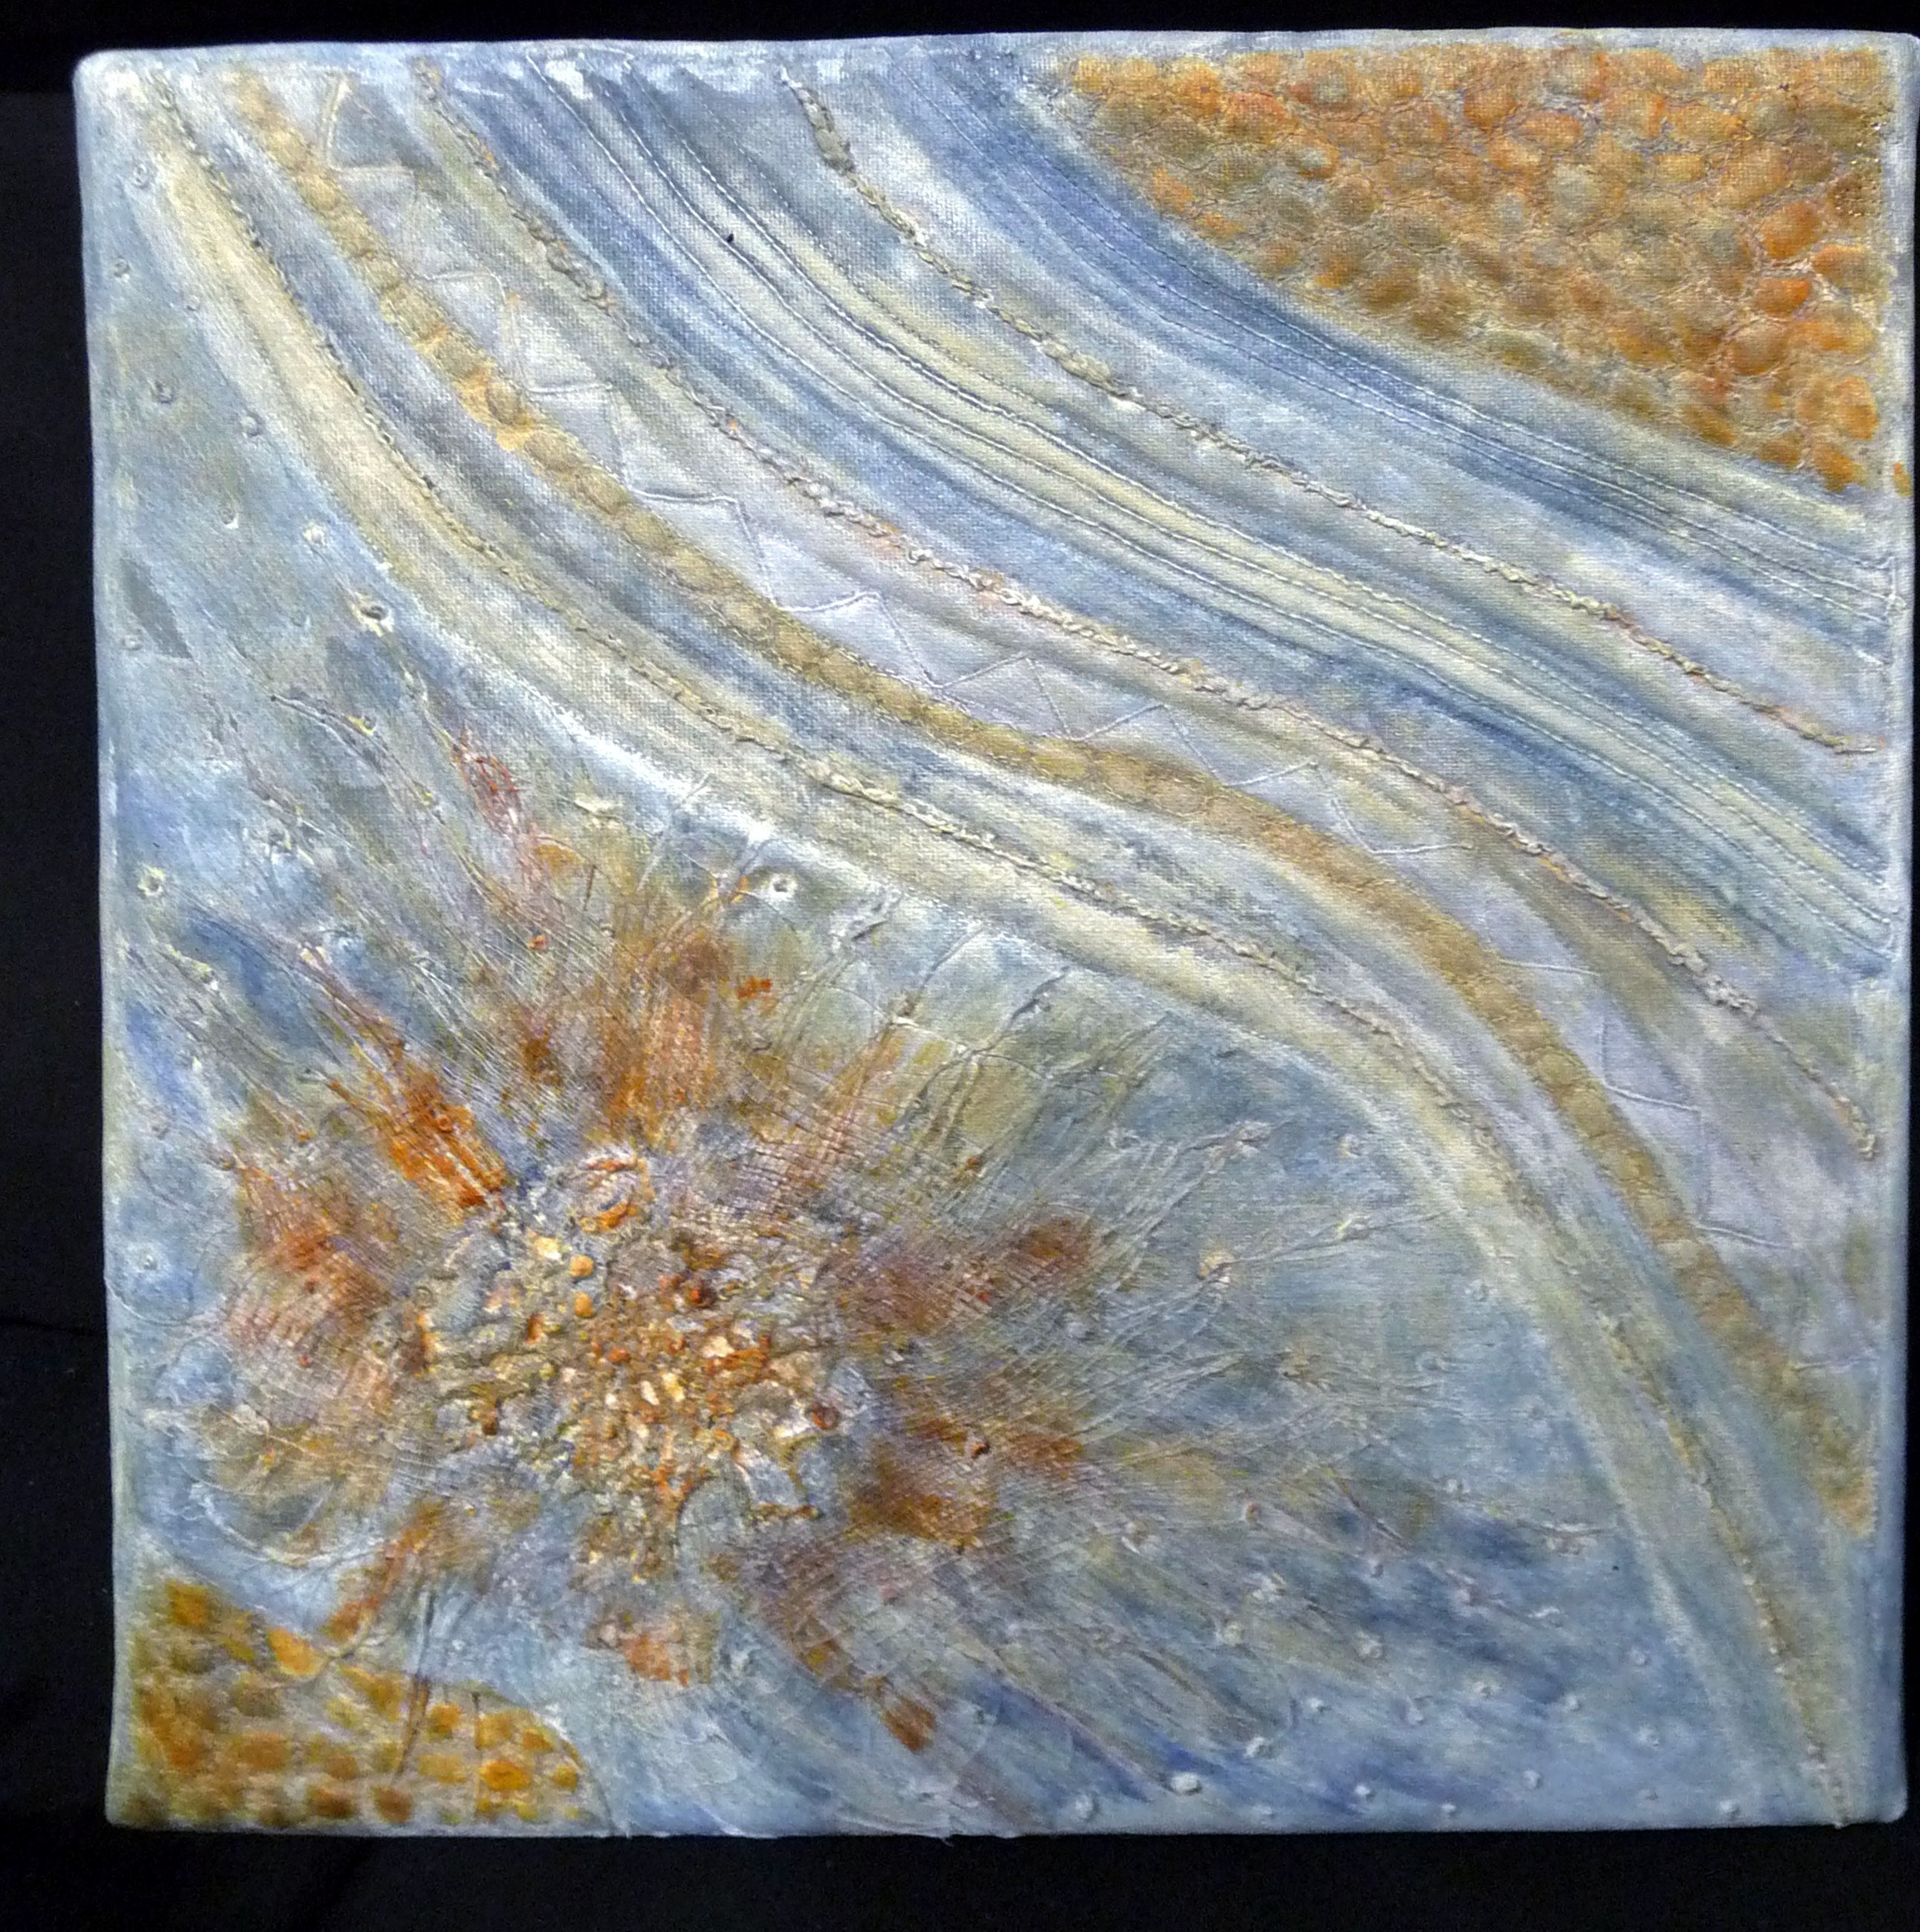 IMAGINATION 1 by Moya McCarthy, mixed media with hand and machine stitch